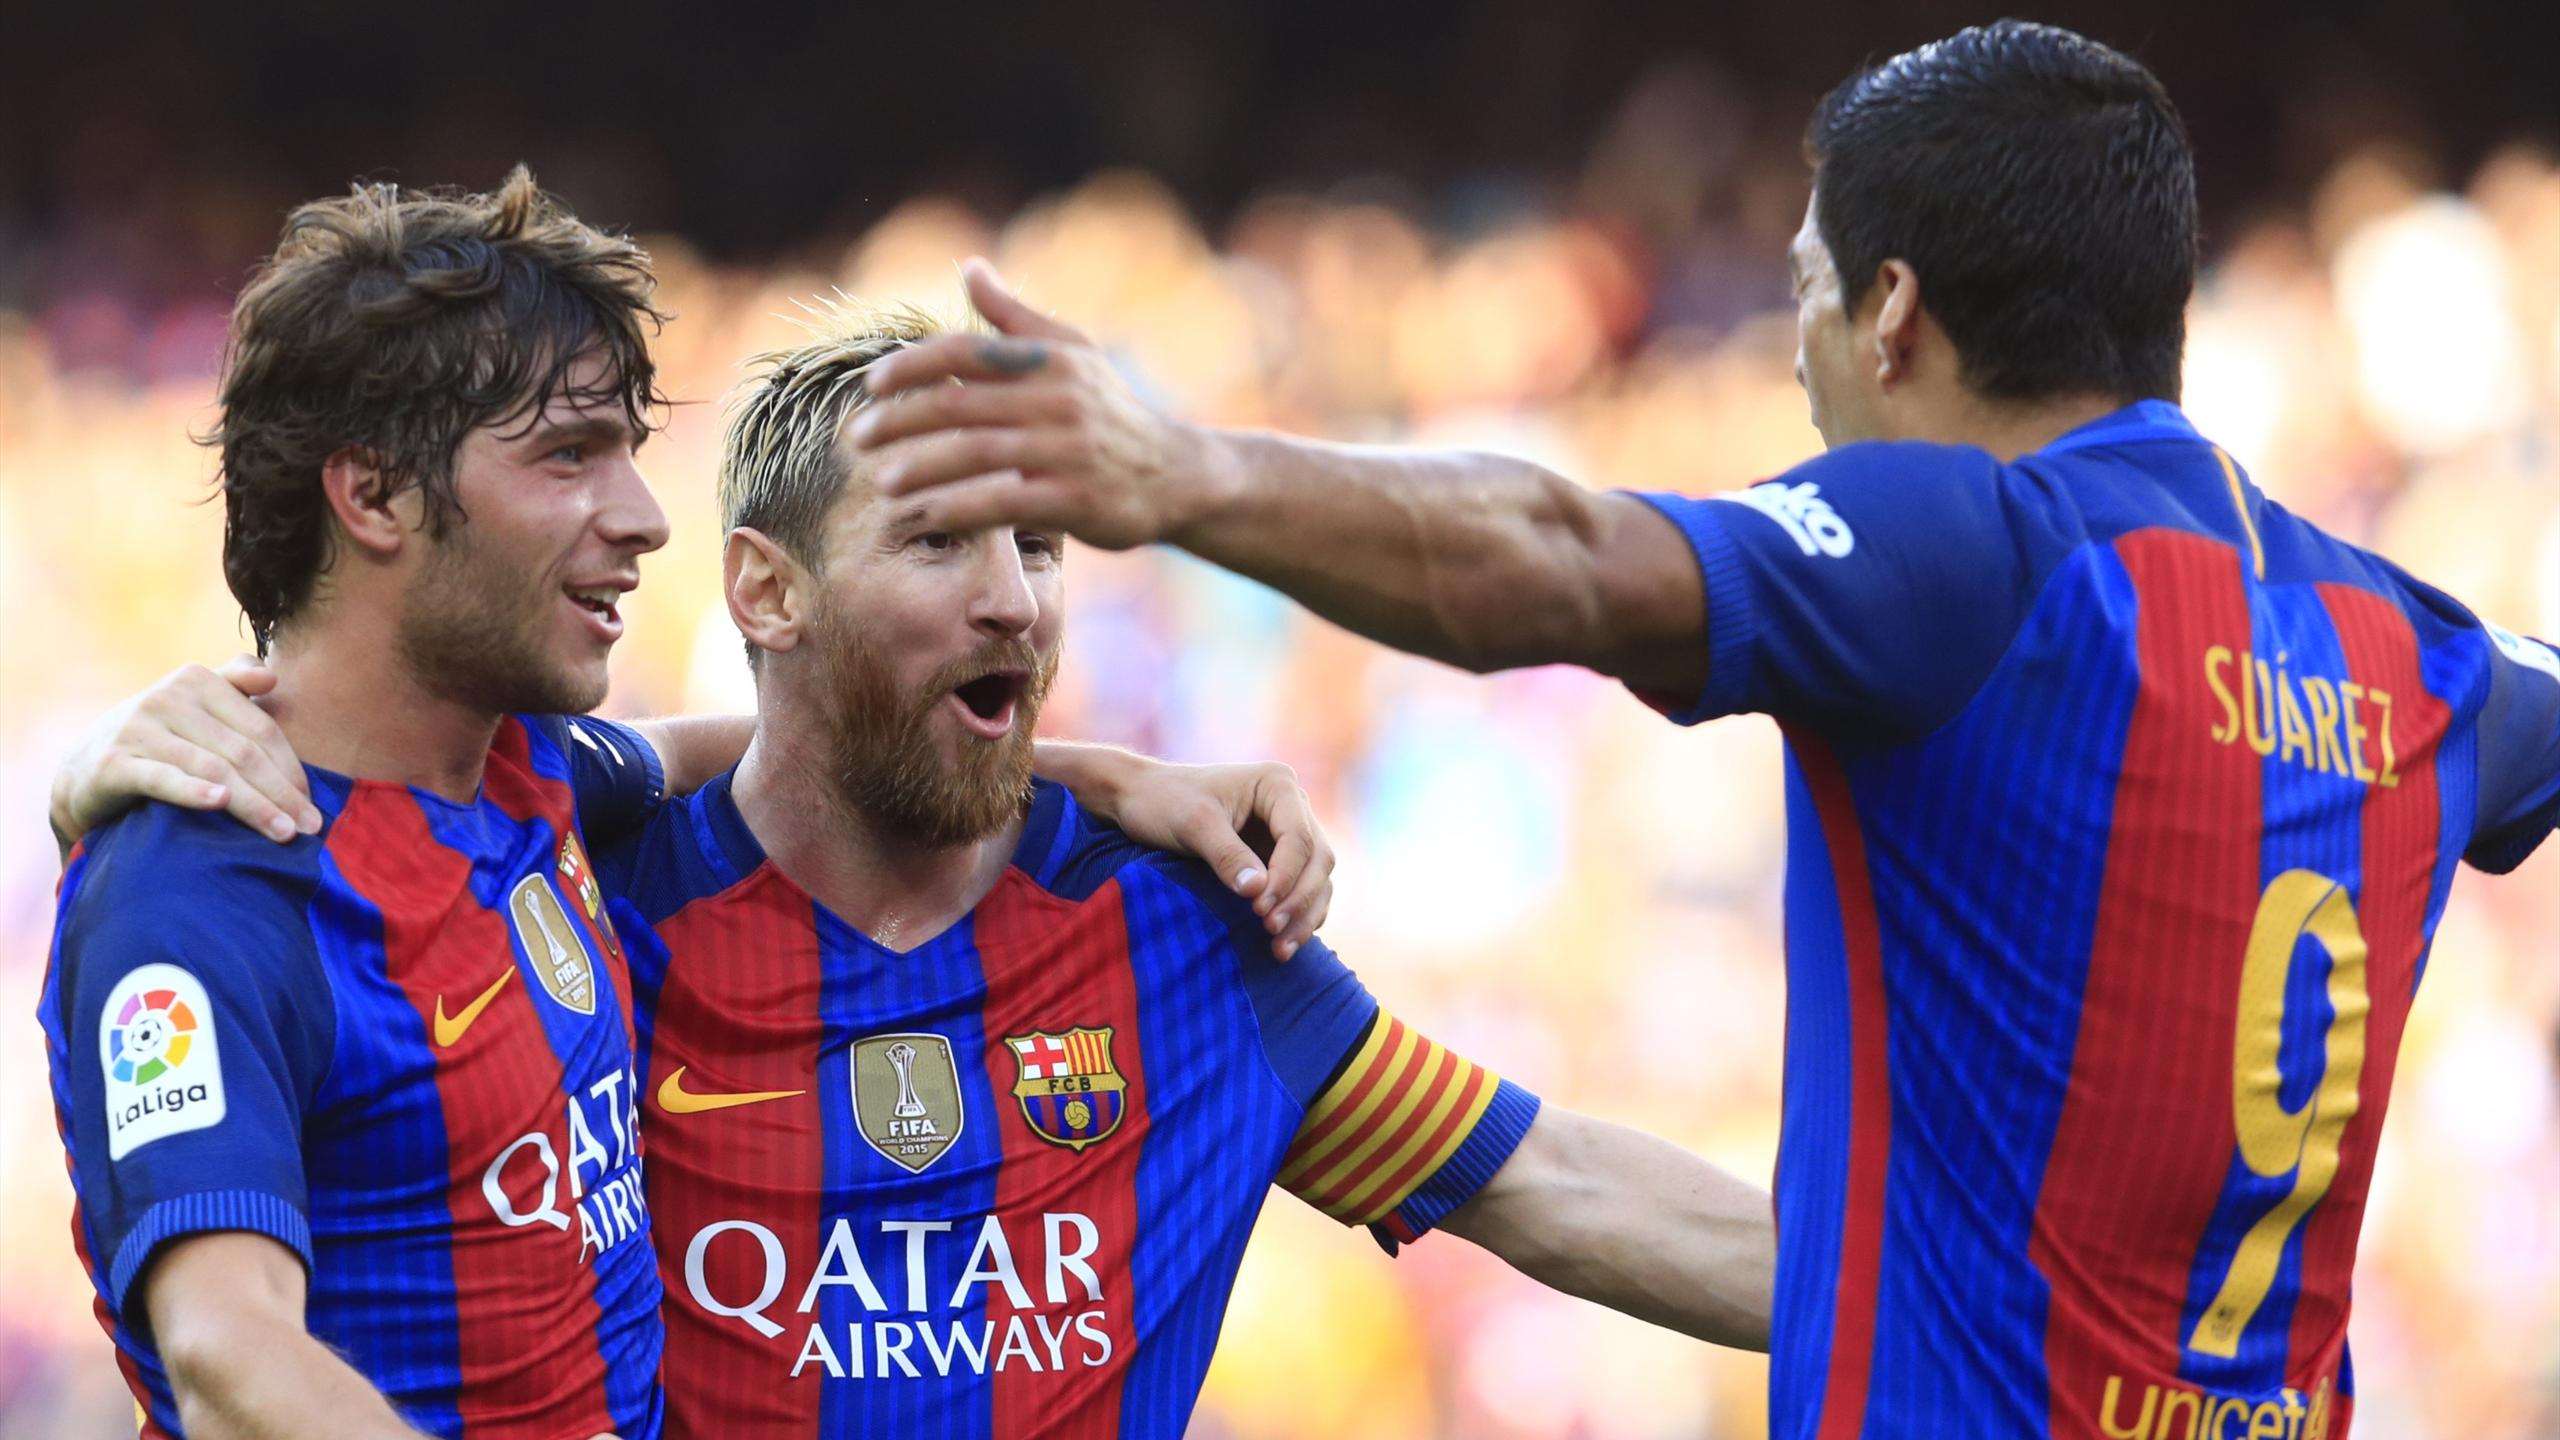 Barcelona's Argentinian forward Lionel Messi (C) celebrates after scoring with Barcelona's midfielder Sergi Roberto (L) and Barcelona's Uruguayan forward Luis Suarez